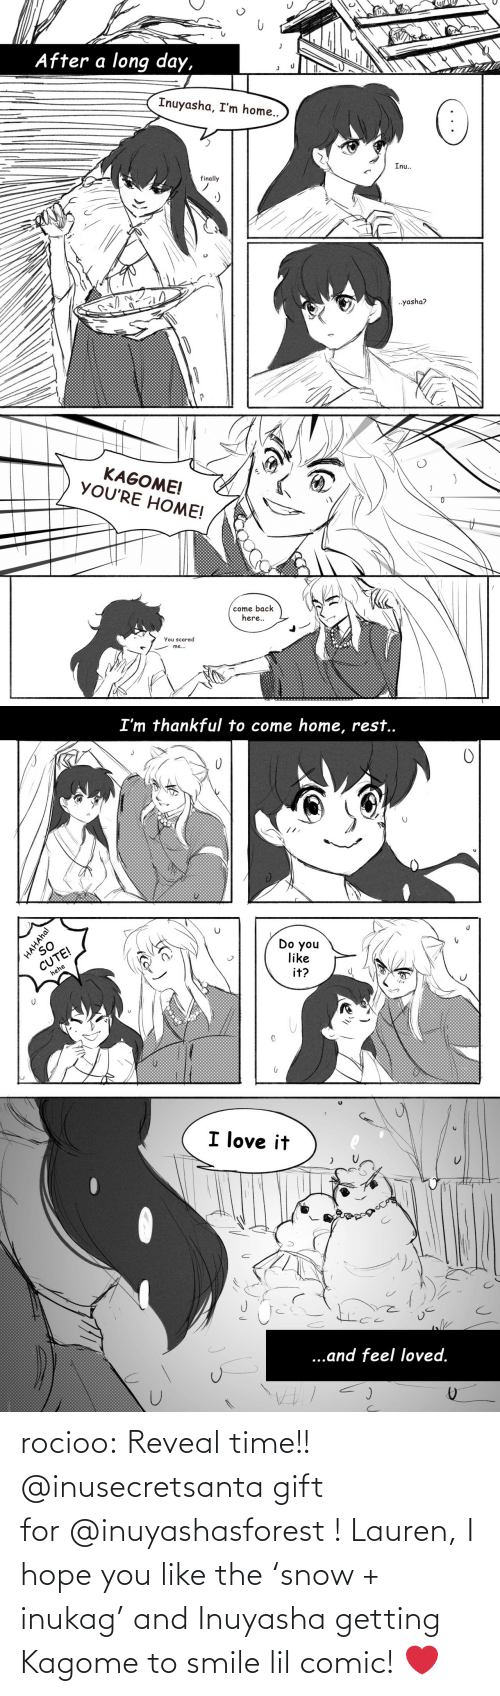 lil: rocioo: Reveal time!! @inusecretsanta gift for @inuyashasforest ! Lauren, I hope you like the 'snow + inukag' and Inuyasha getting Kagome to smile lil comic! ❤